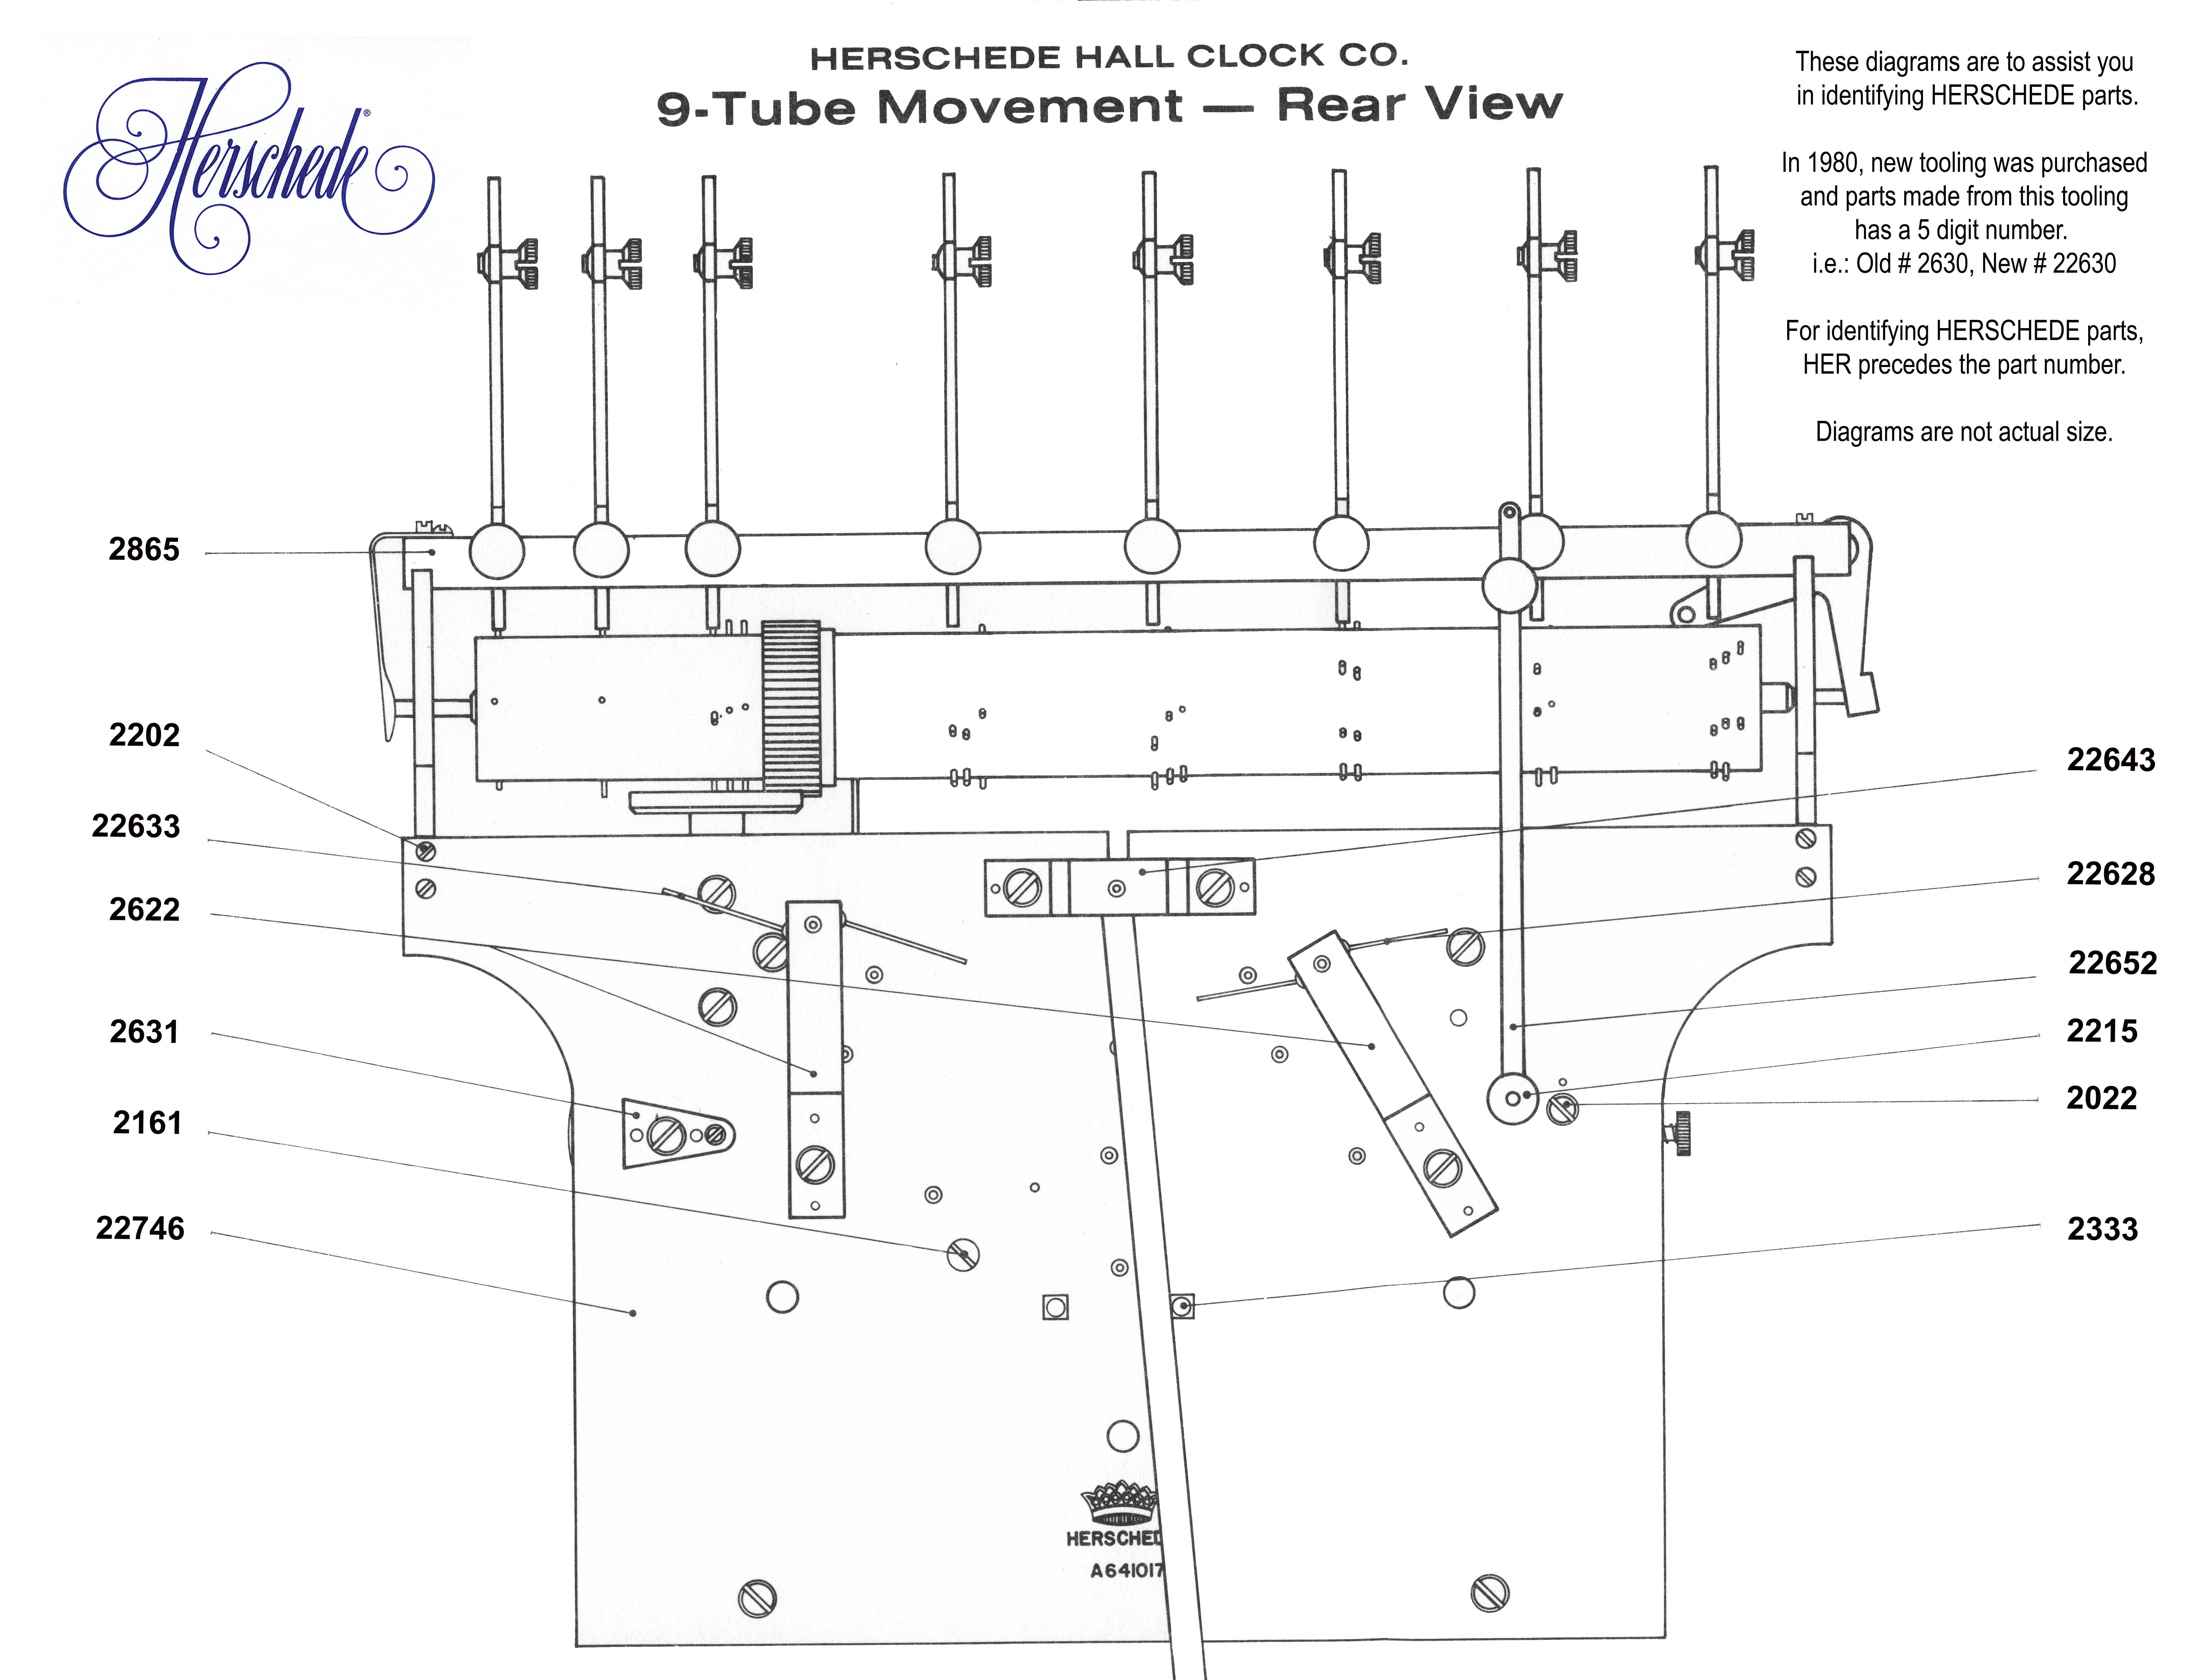 her-9-tube-rear-mov-view-with-pn-r1.jpg